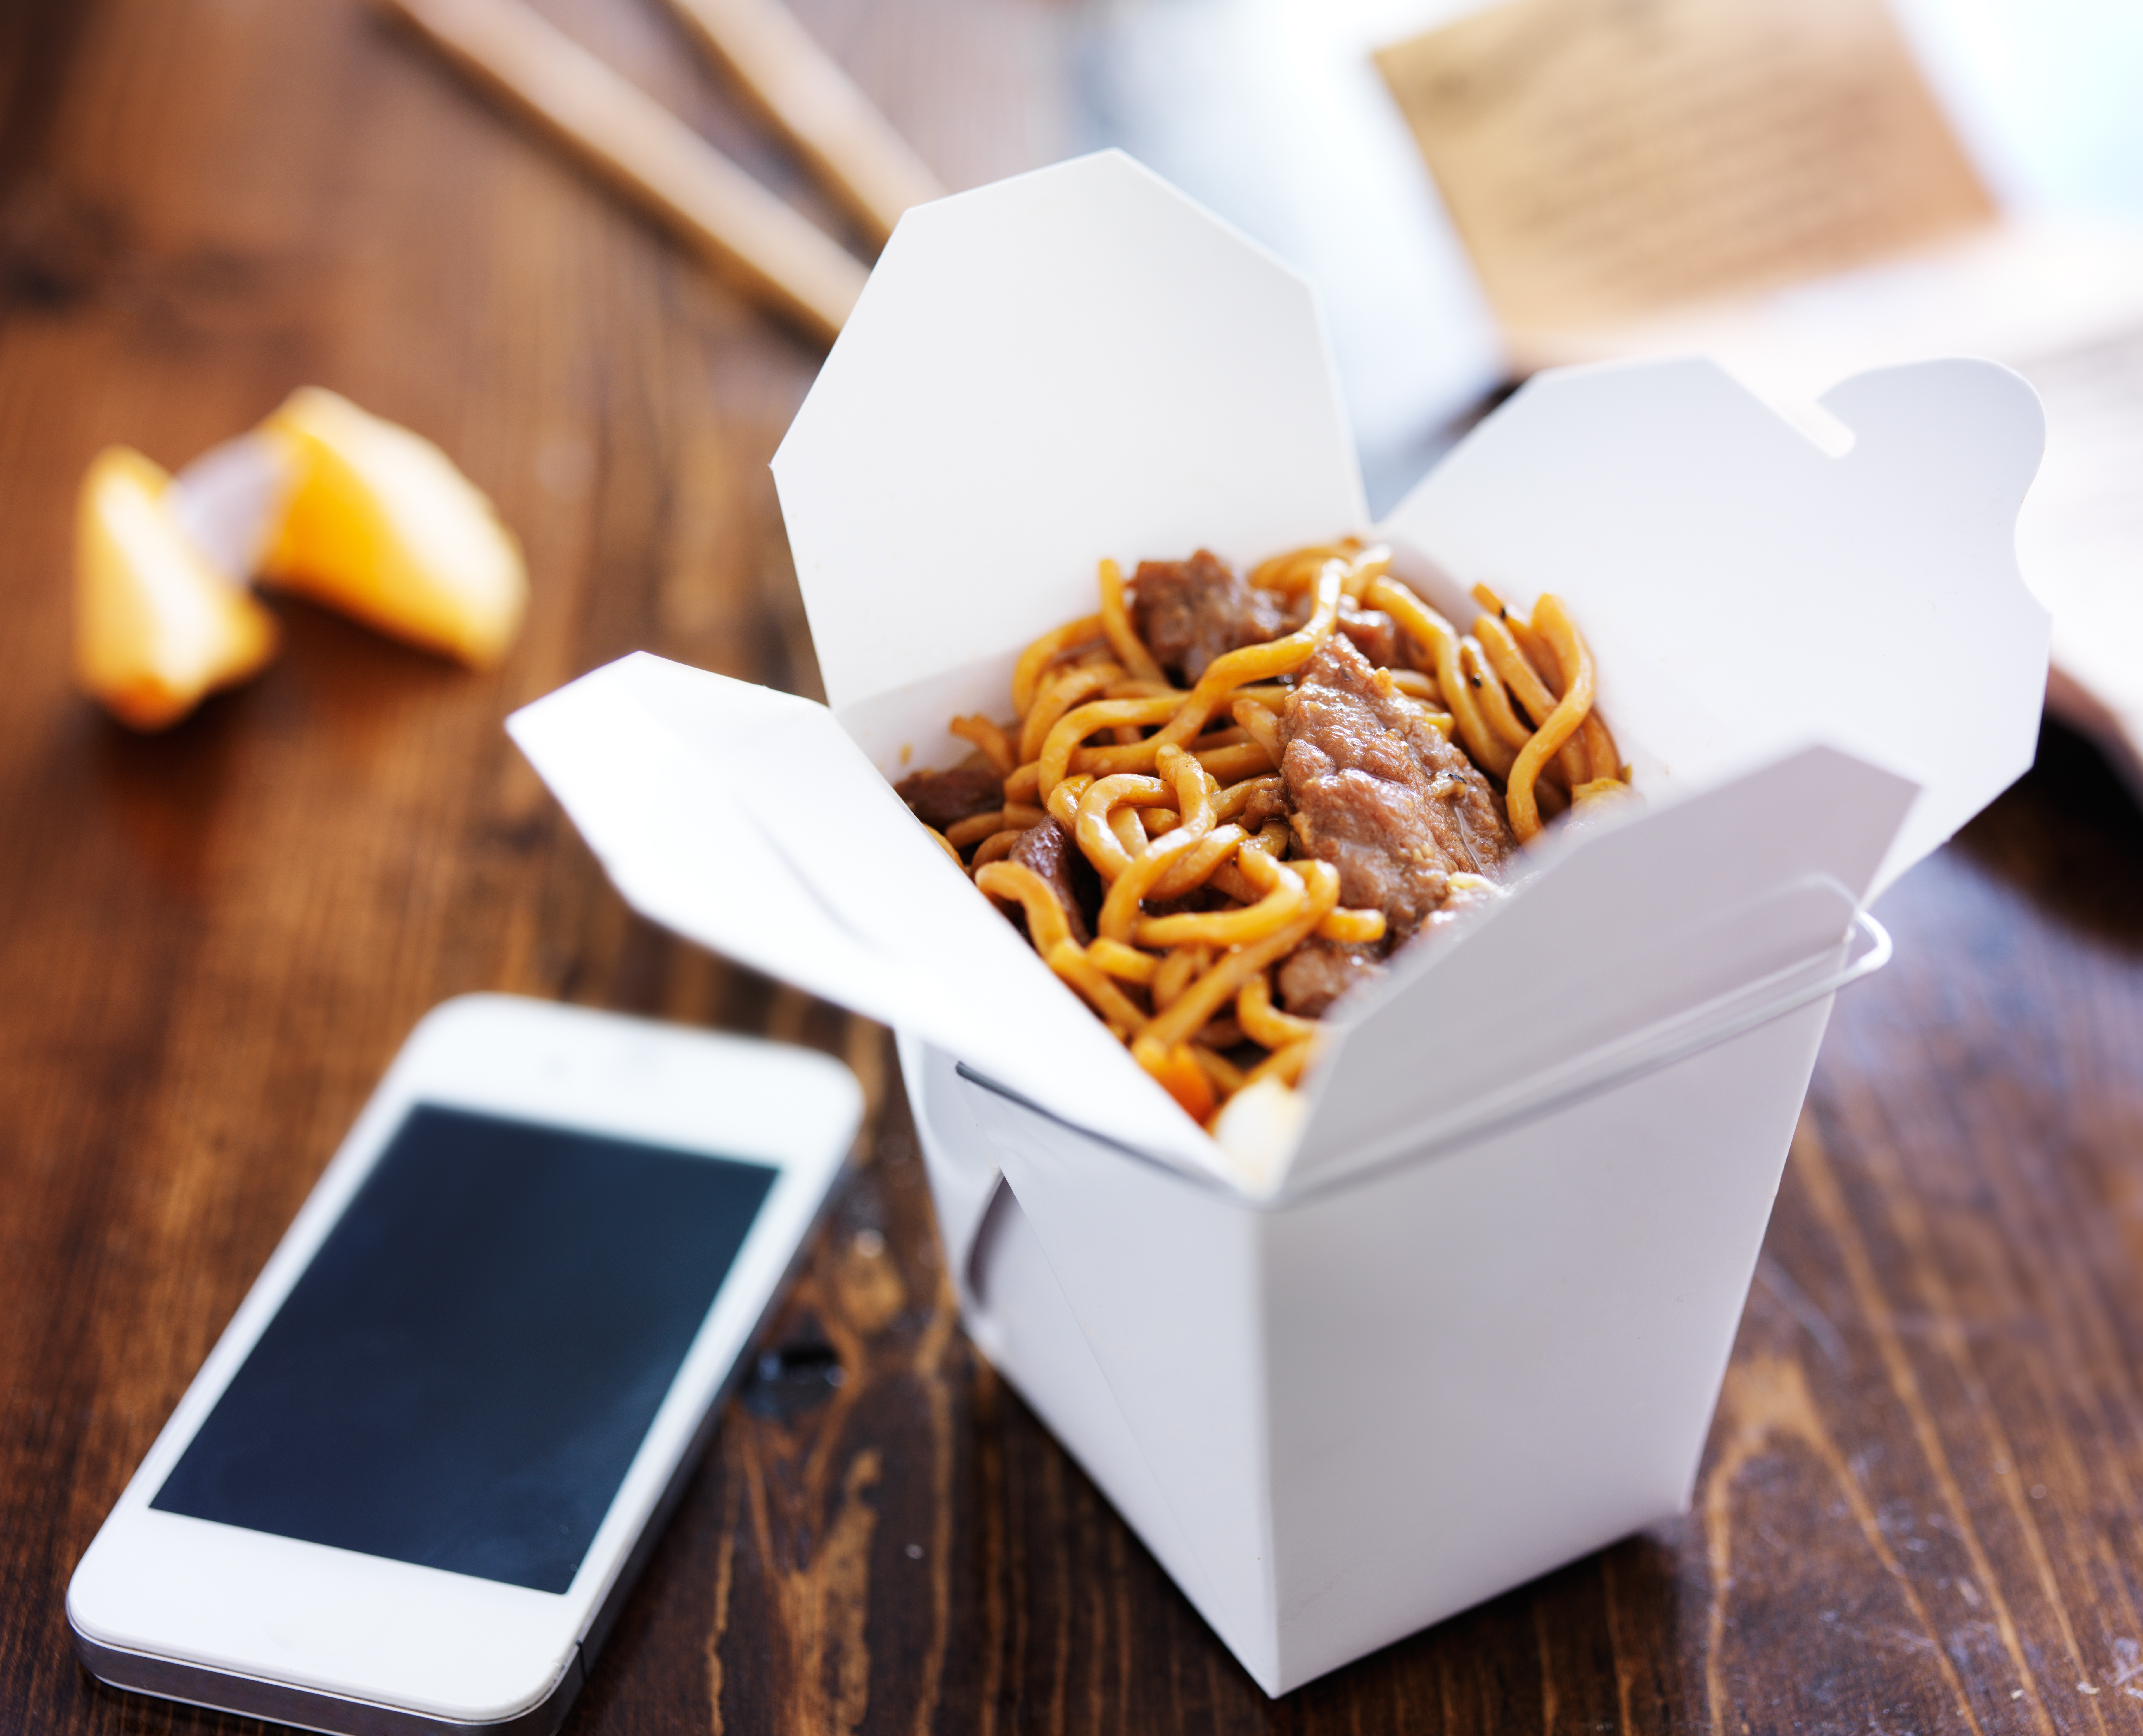 Top 5 Usability Mistakes in To-Go Ordering